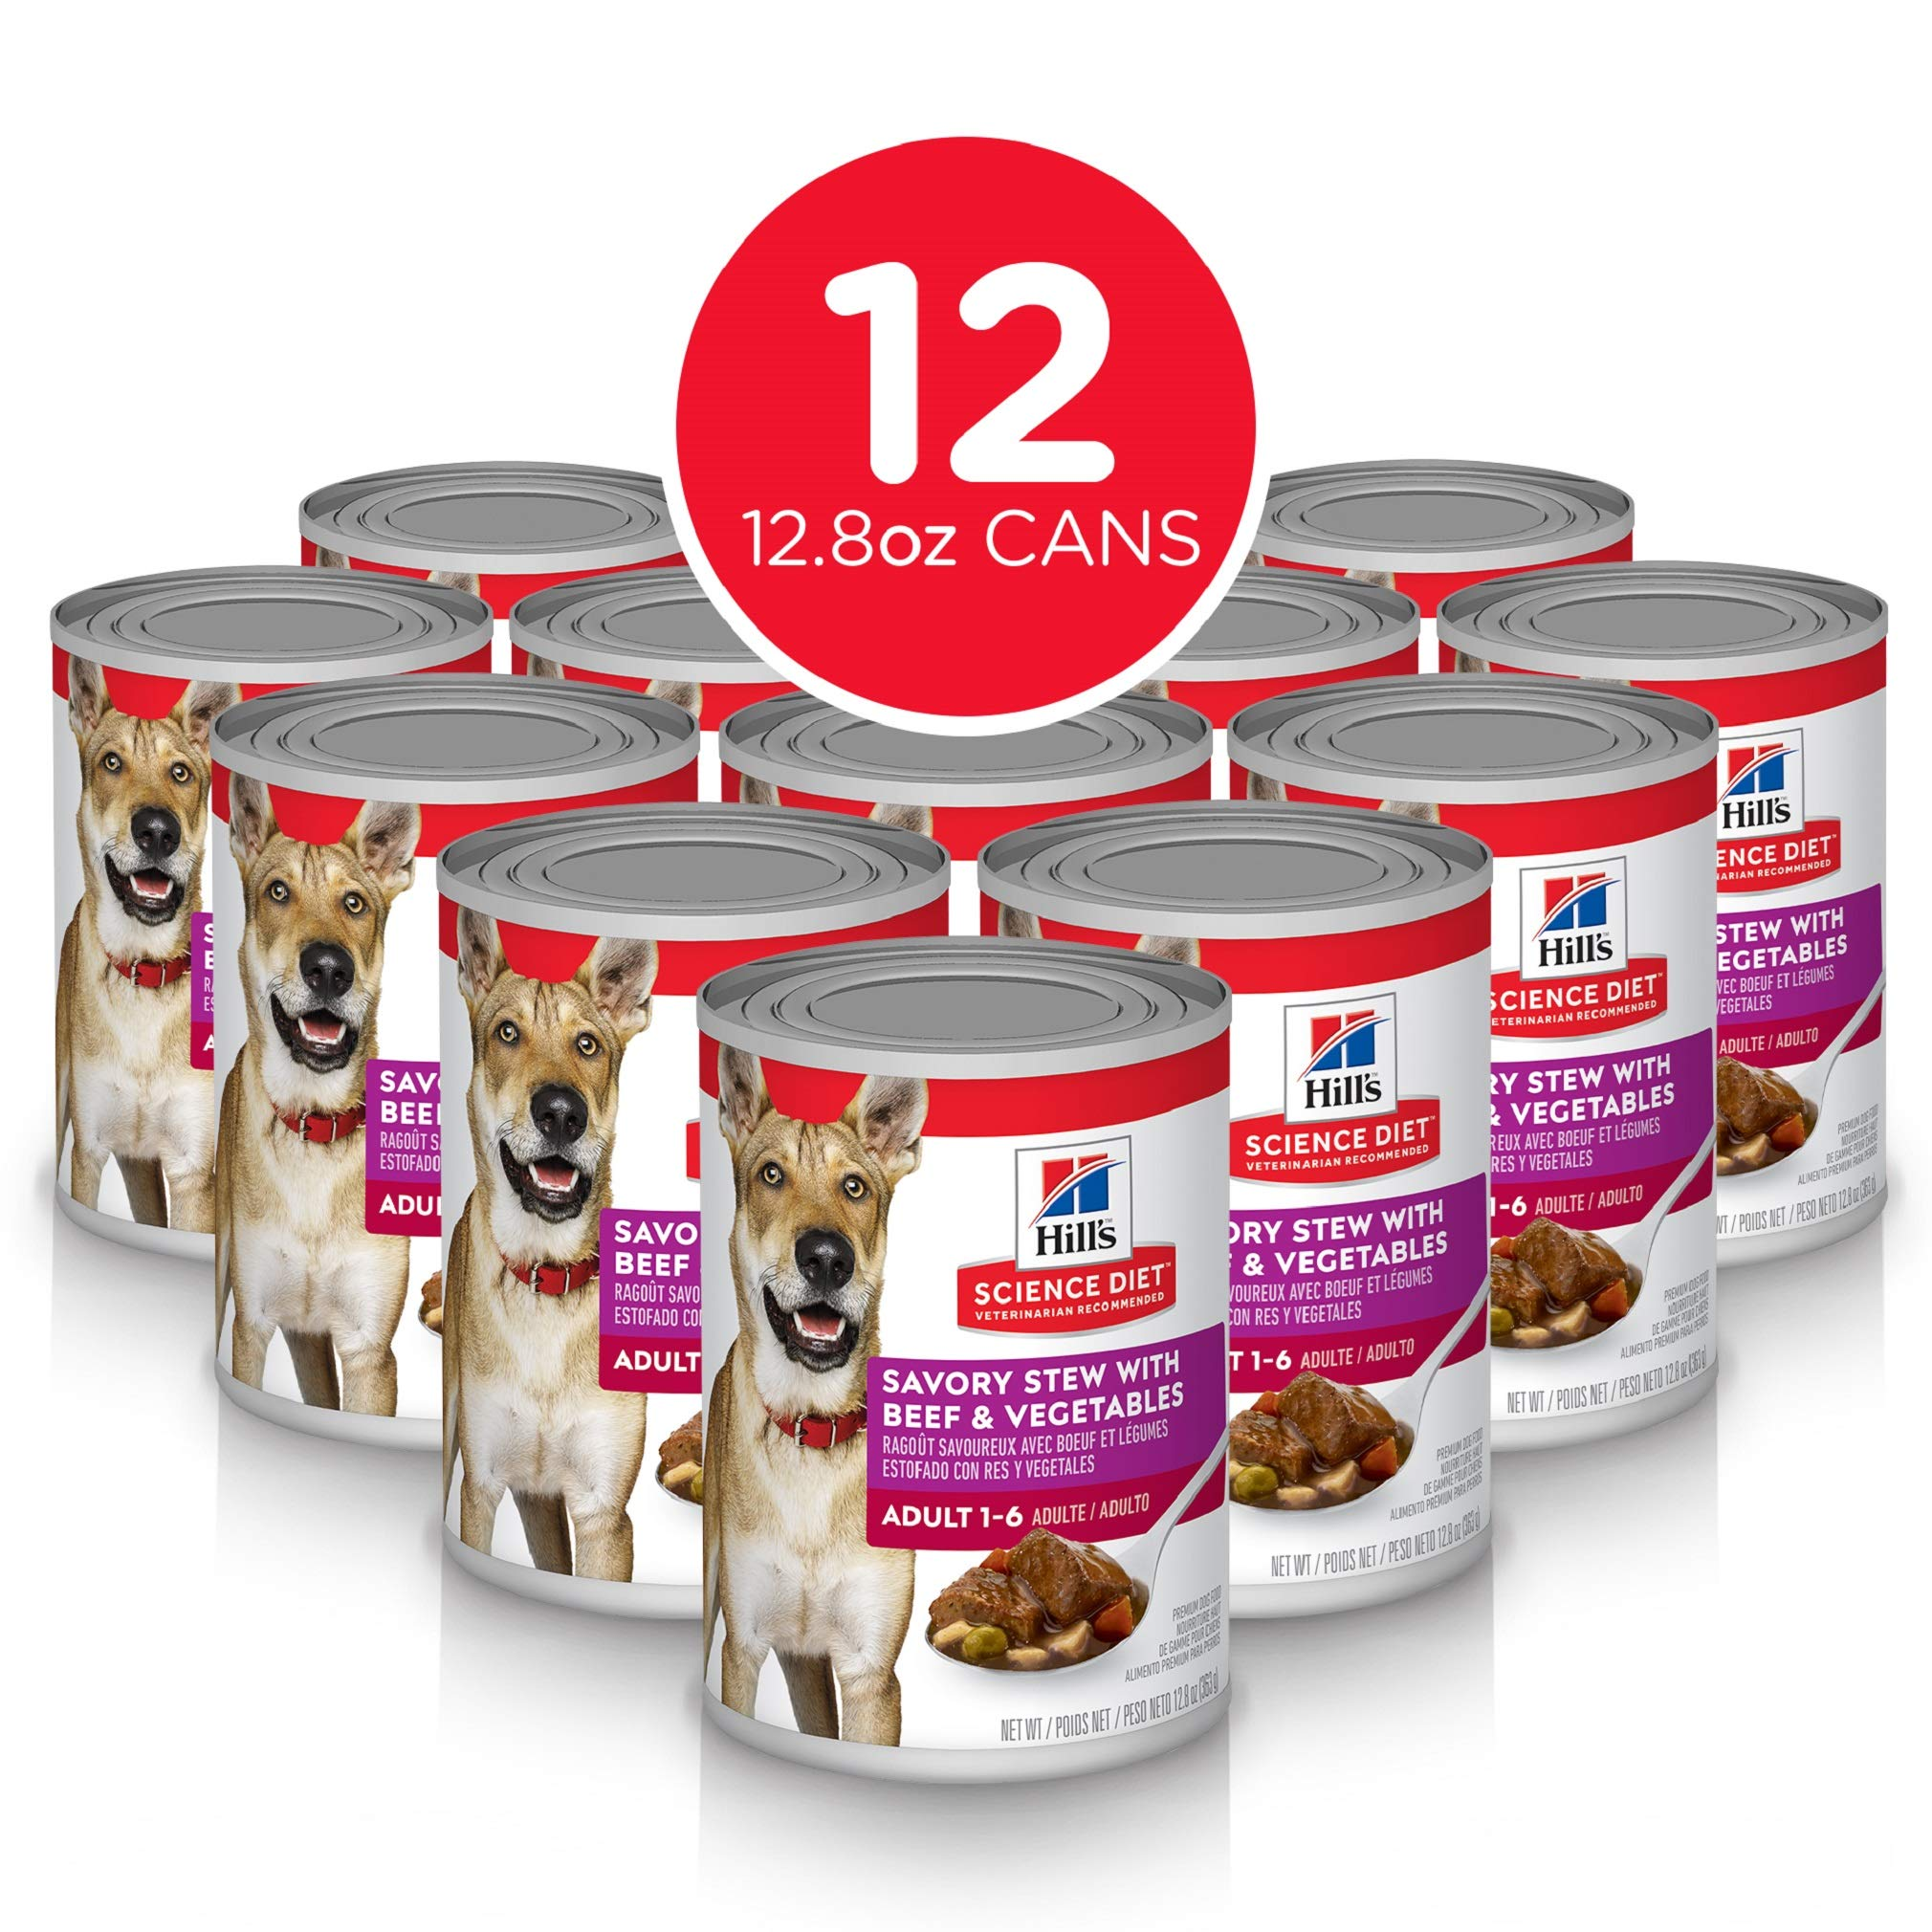 Hill's Science Diet Wet Dog Food, Adult, Savory Stew with Beef & Vegetables, 12.8 oz, 12-pack by Hill's Science Diet